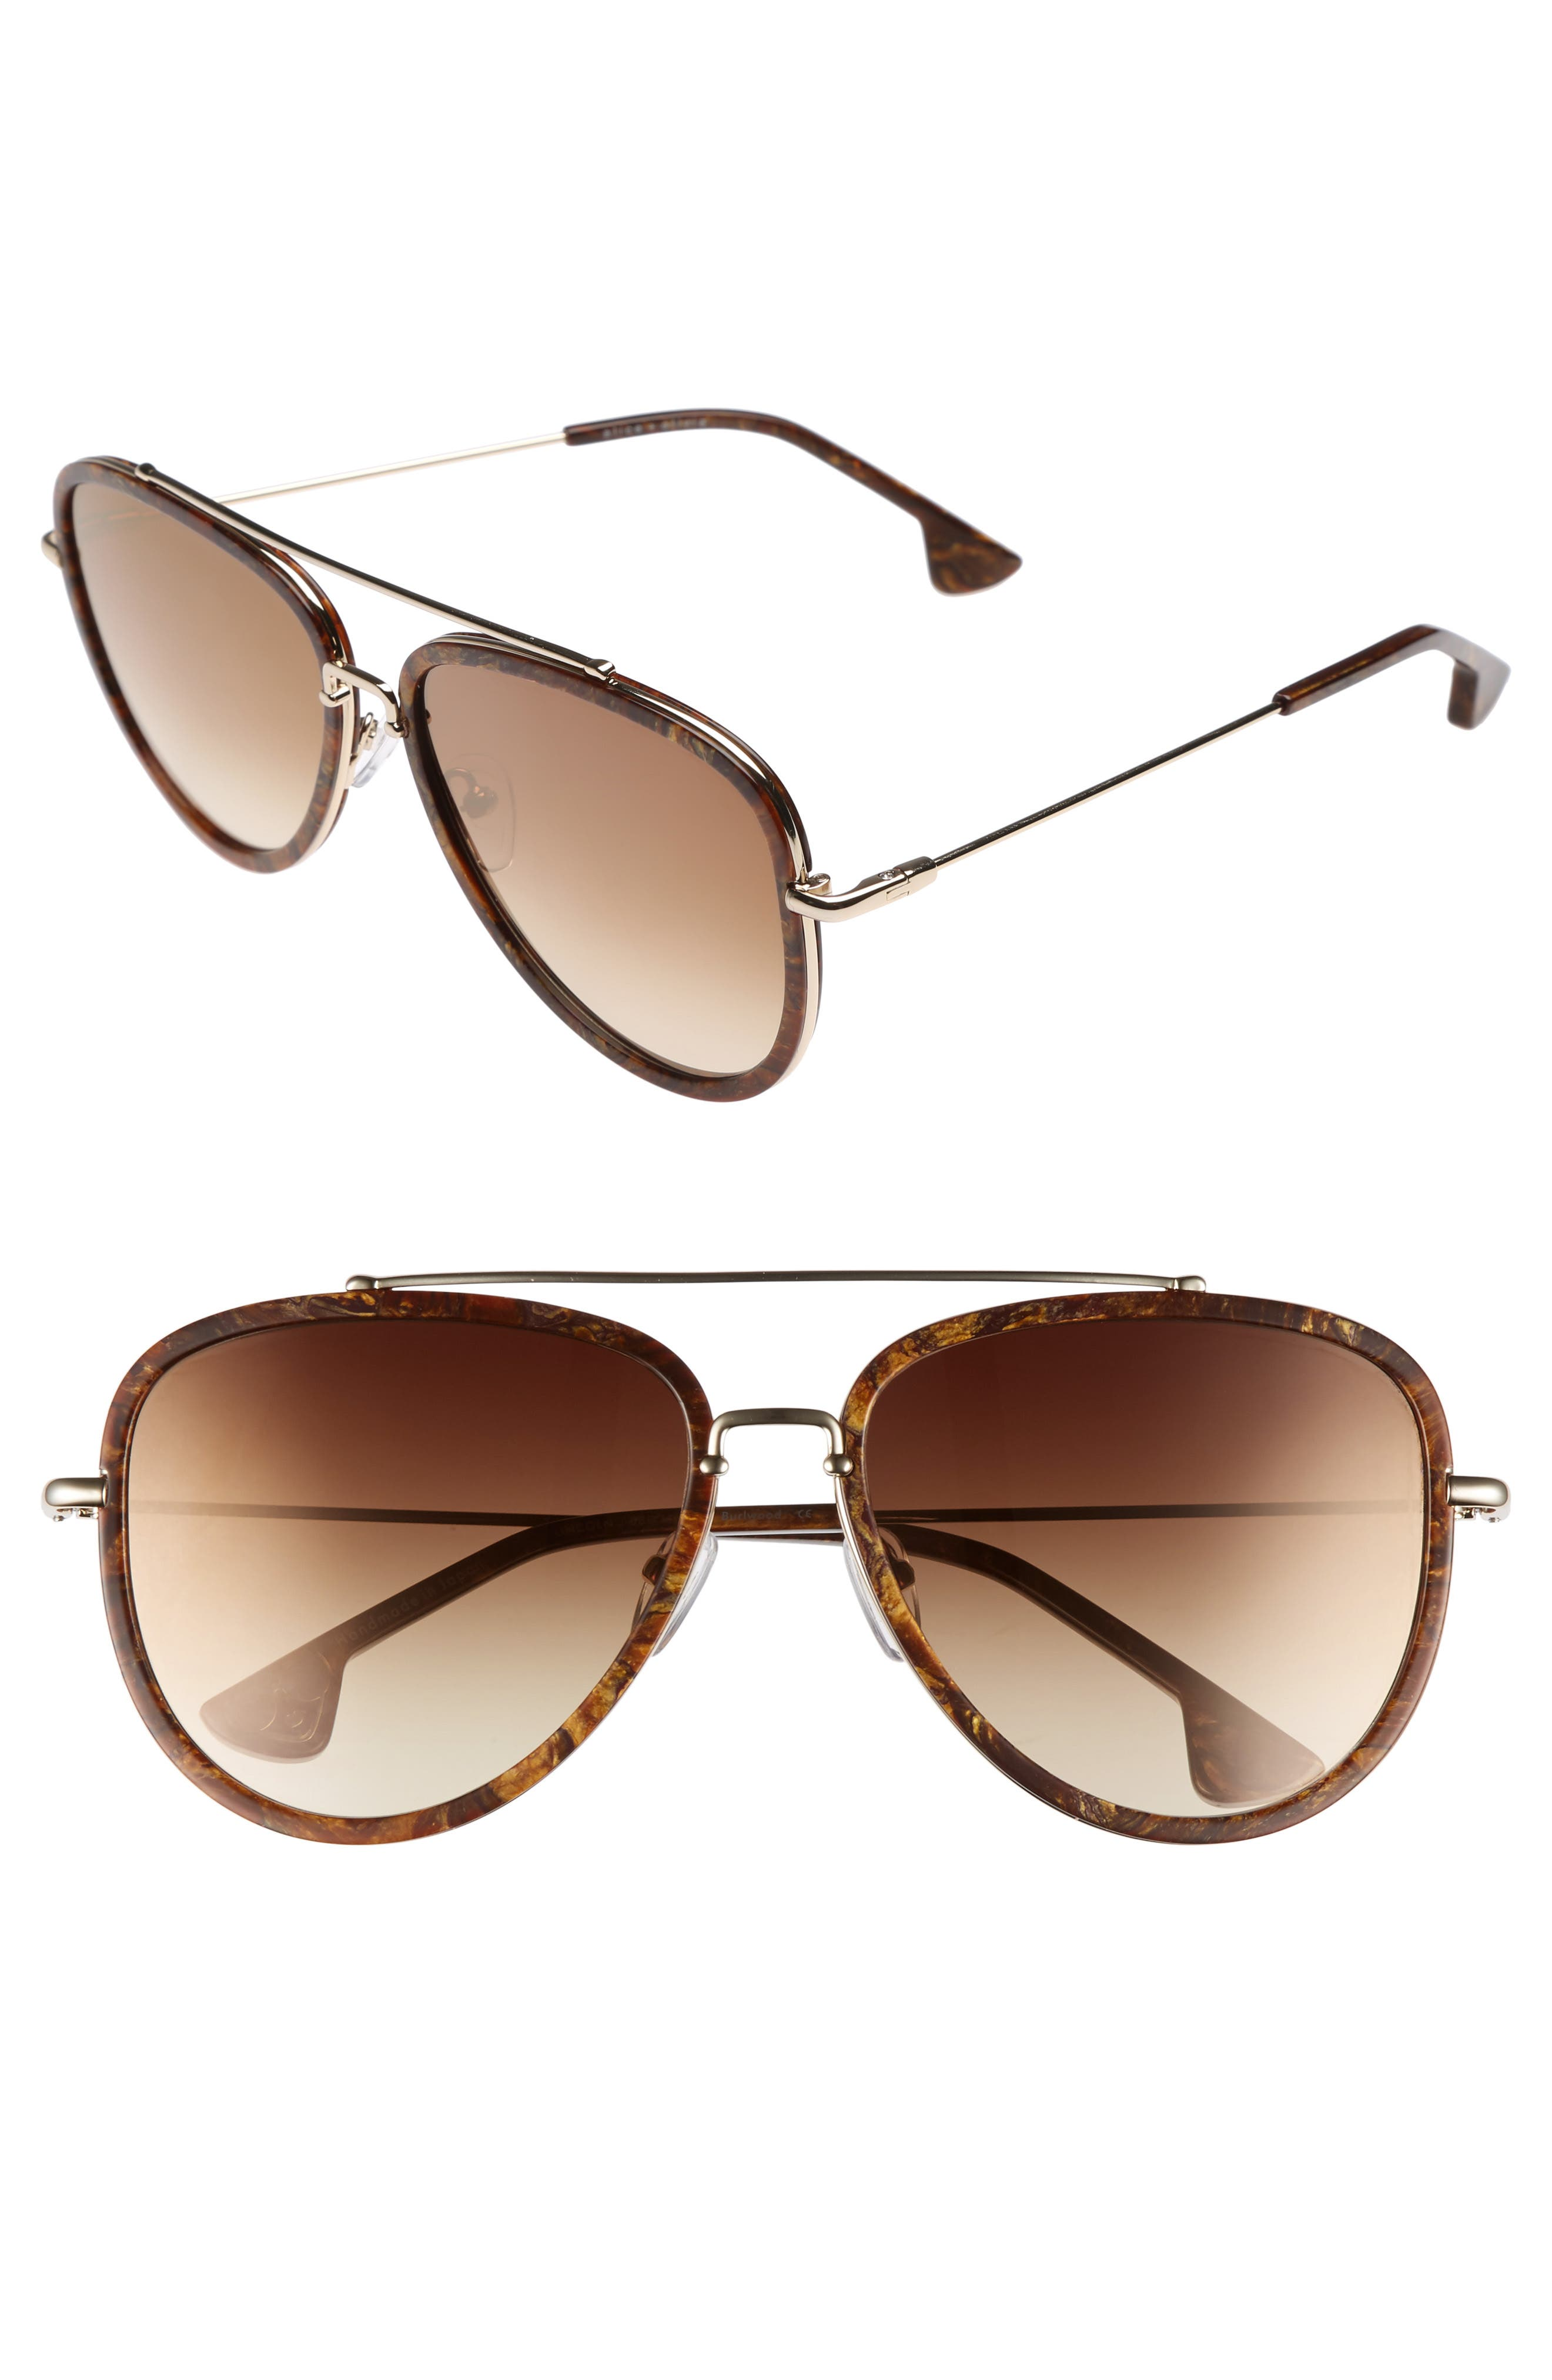 Main Image - Alice + Olivia Lincoln 58mm Aviator Sunglasses